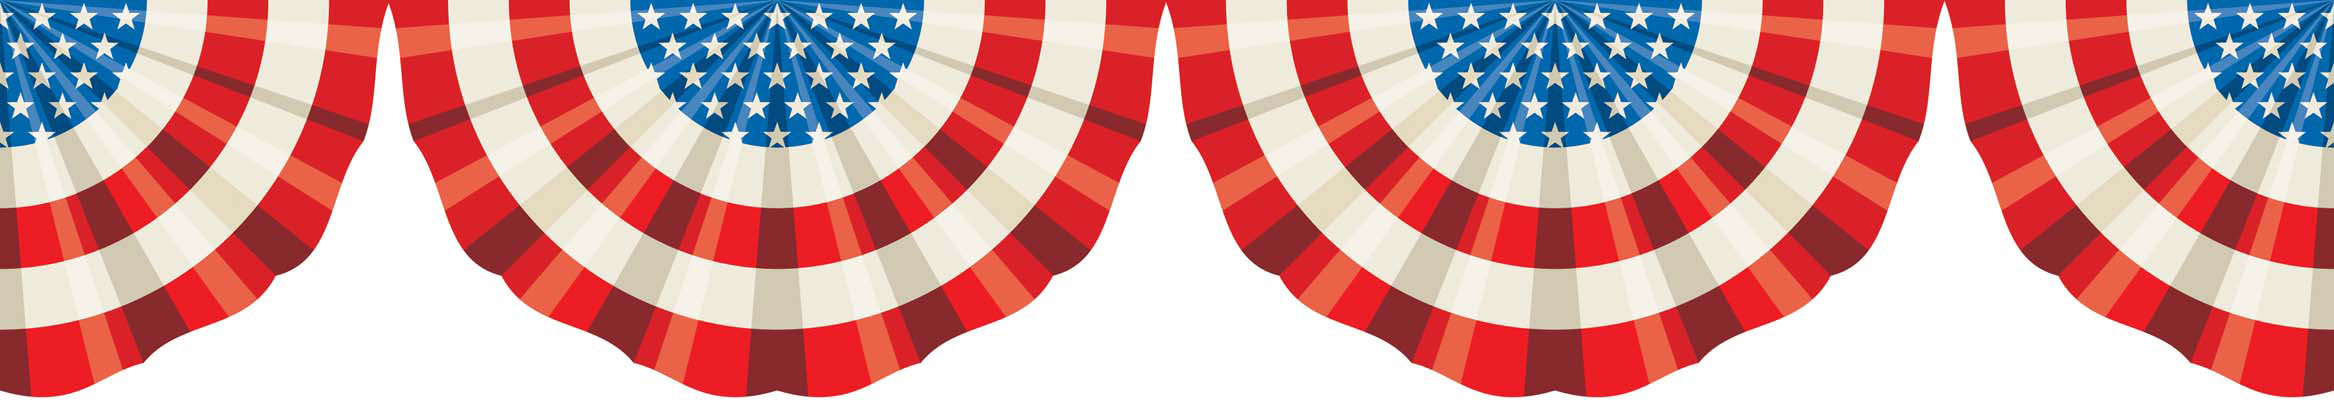 Clipart image of red white and blue bunting banner free download Free Patriotic Bunting Cliparts, Download Free Clip Art, Free Clip ... banner free download